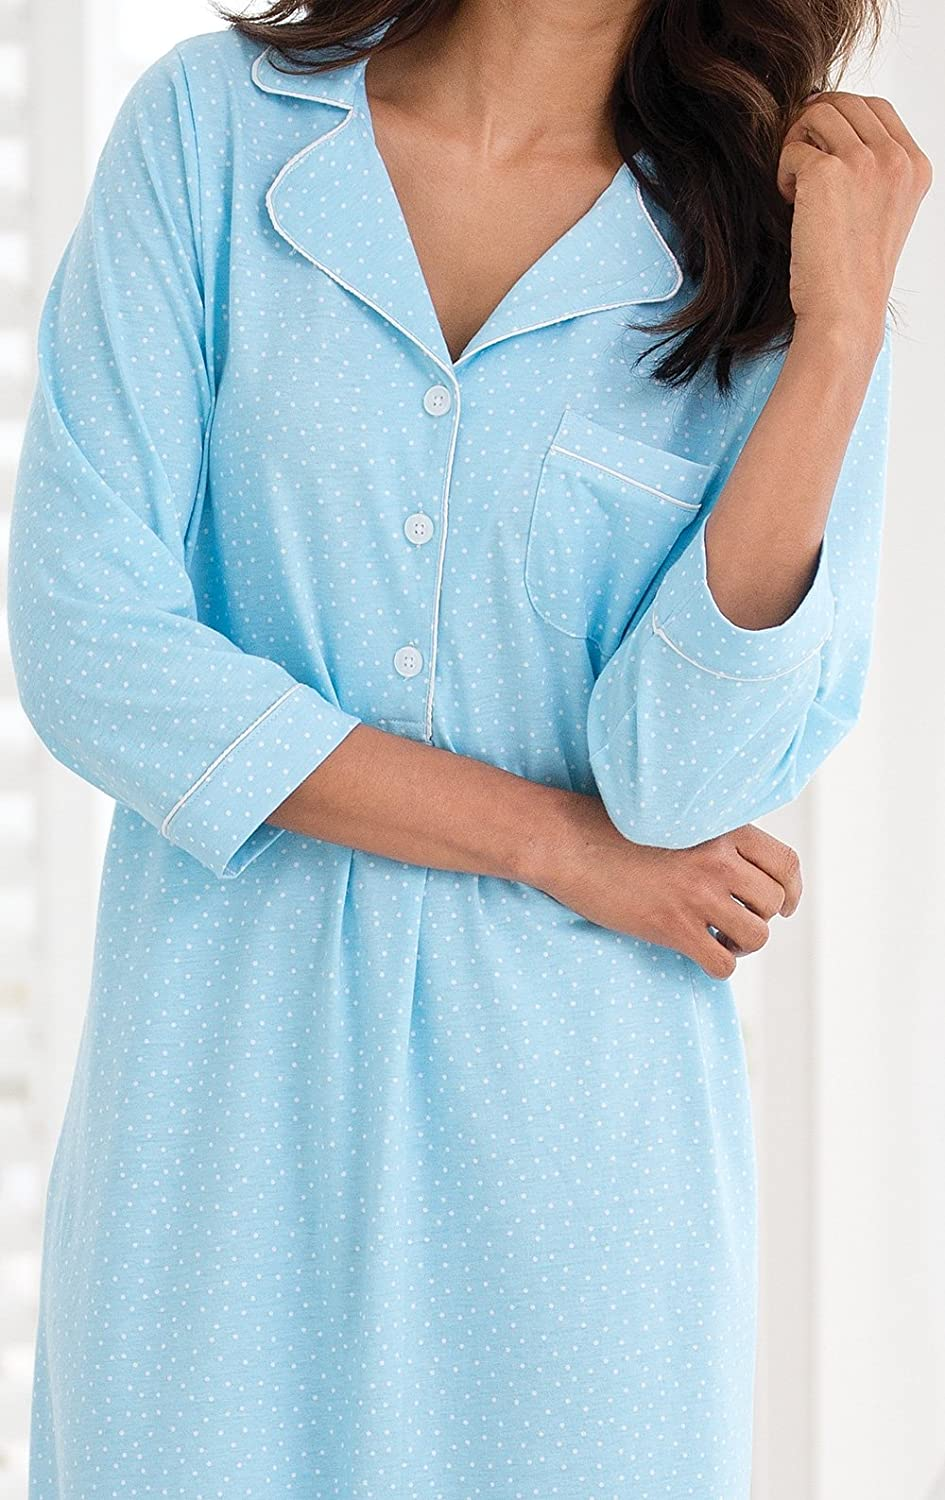 Long Nightgowns for Women PajamaGram Womens Nightgown So Soft